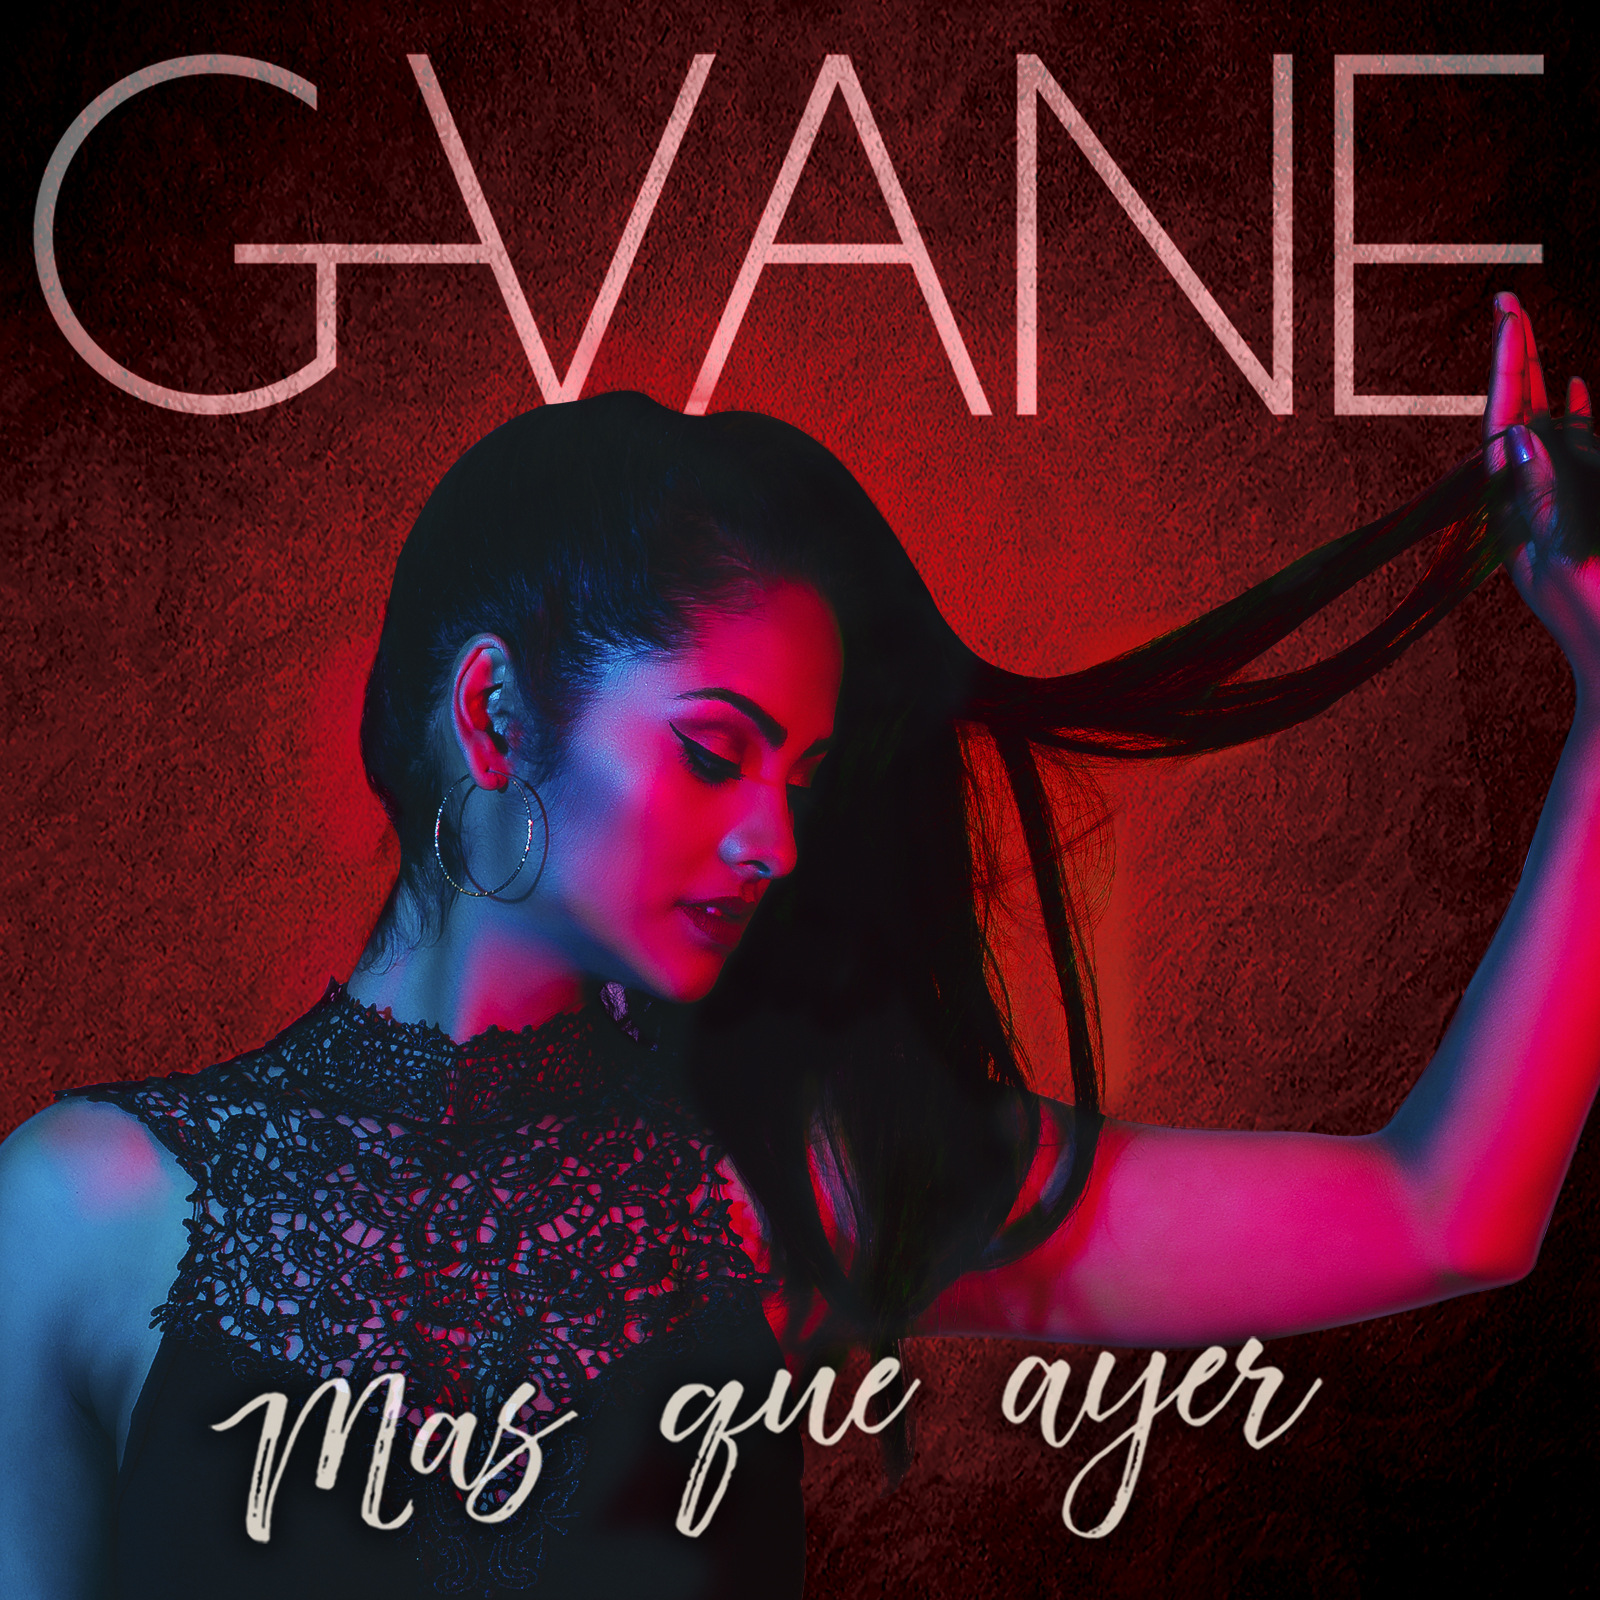 Cover photo for single release 'Mas Que Ayer'